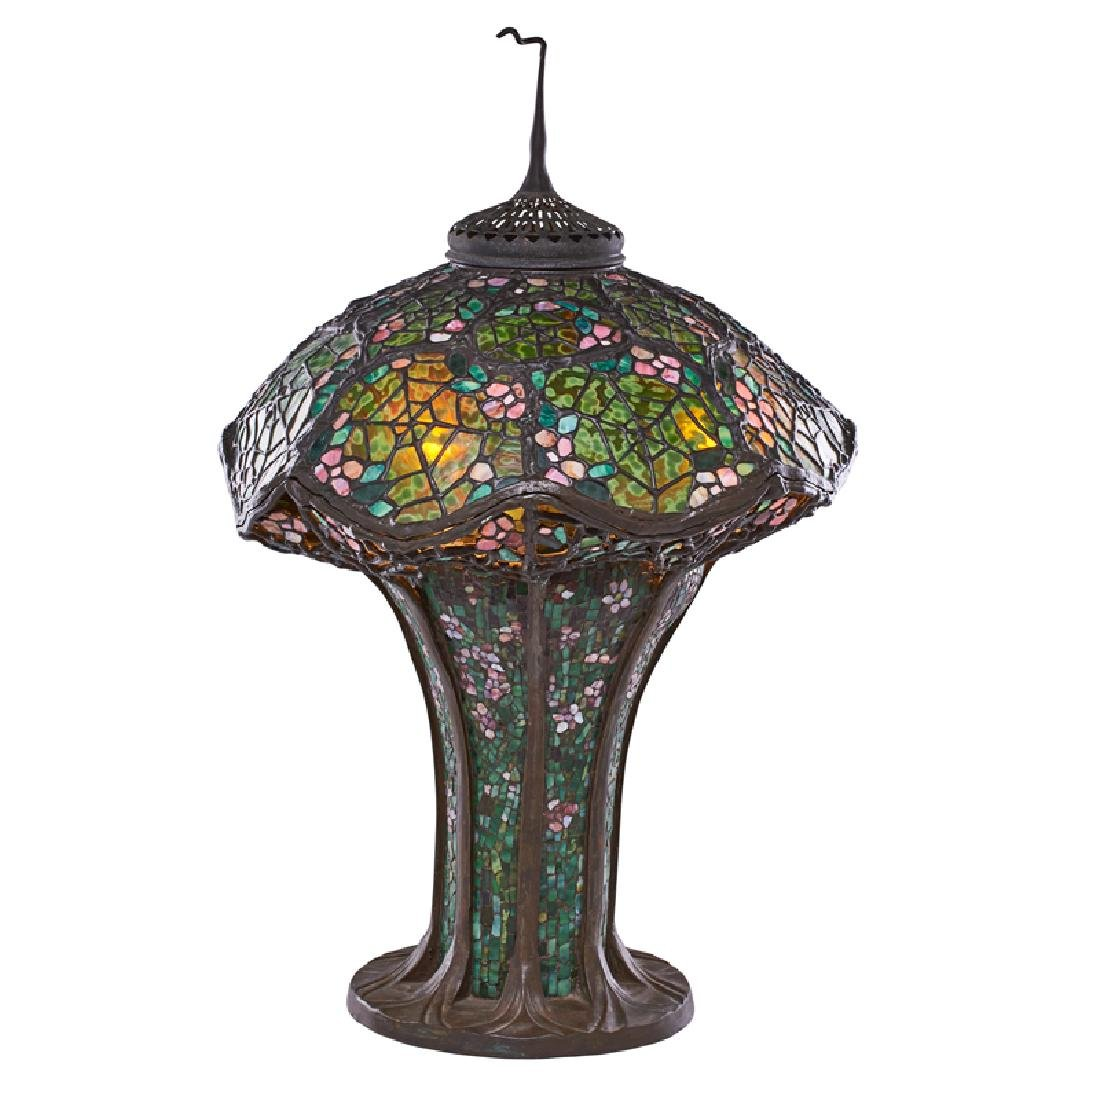 STYLE OF TIFFANY STUDIOS